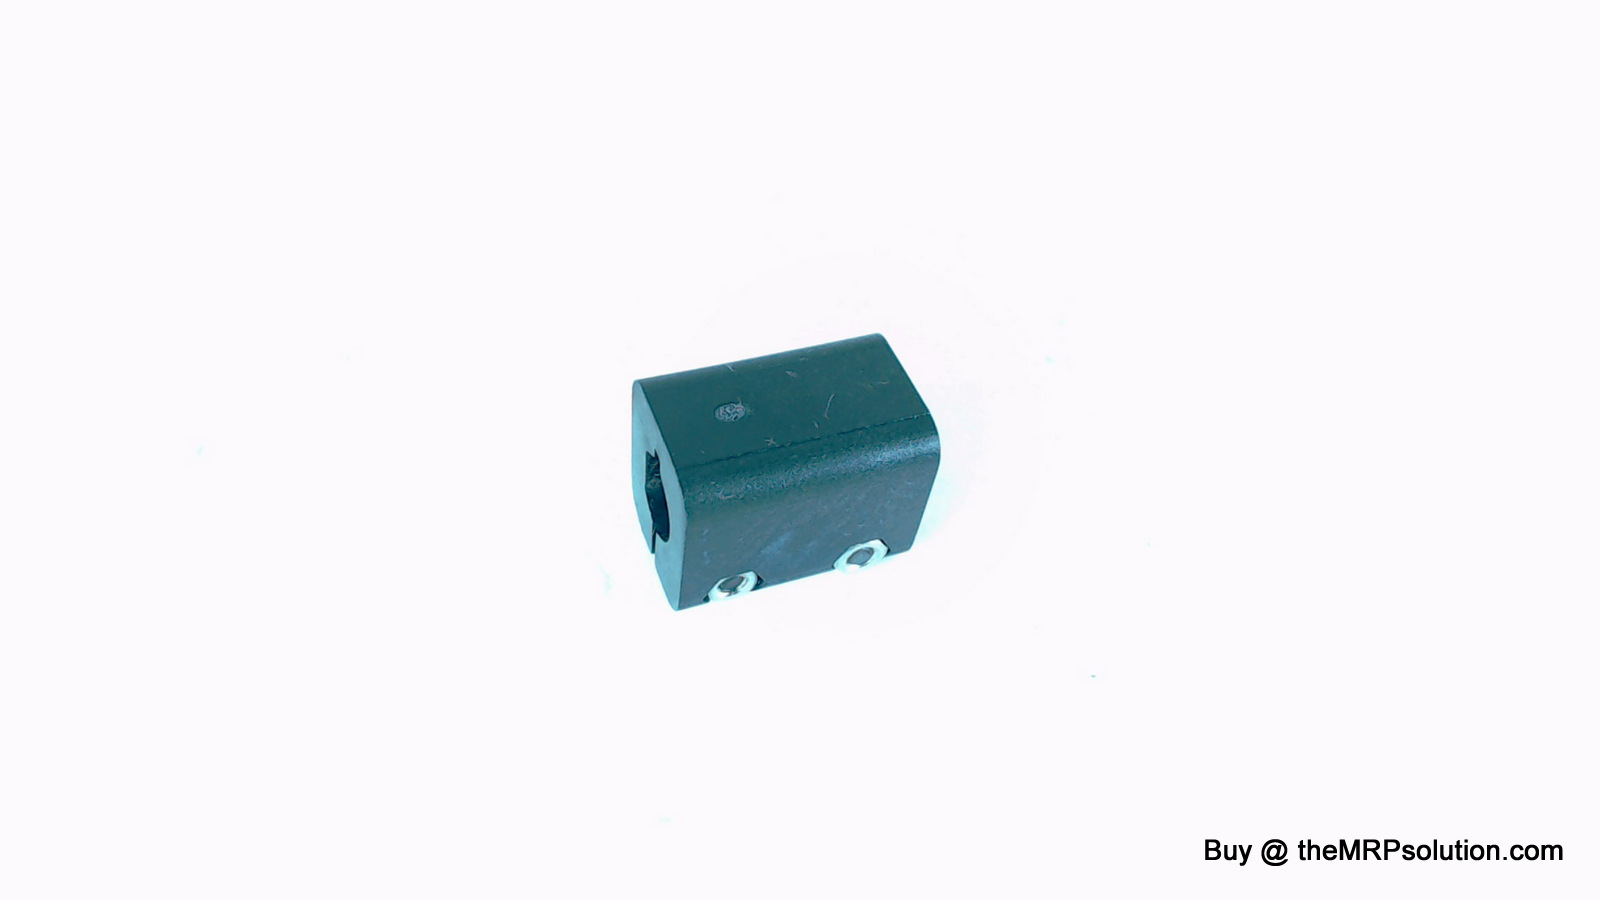 TALLYGEN 085450 SHAFT COUPLER, T6312 New